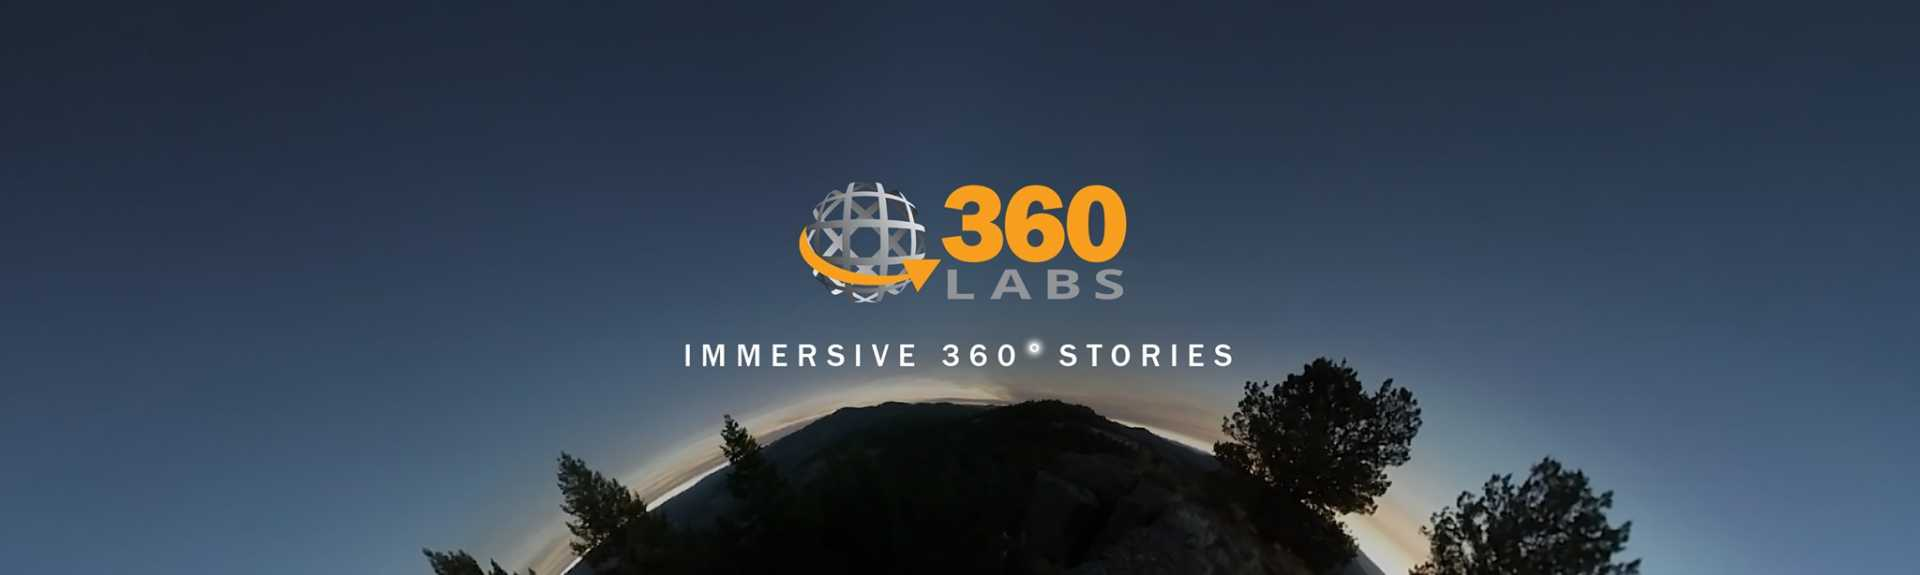 360 Labs: Immersive 360 Stories